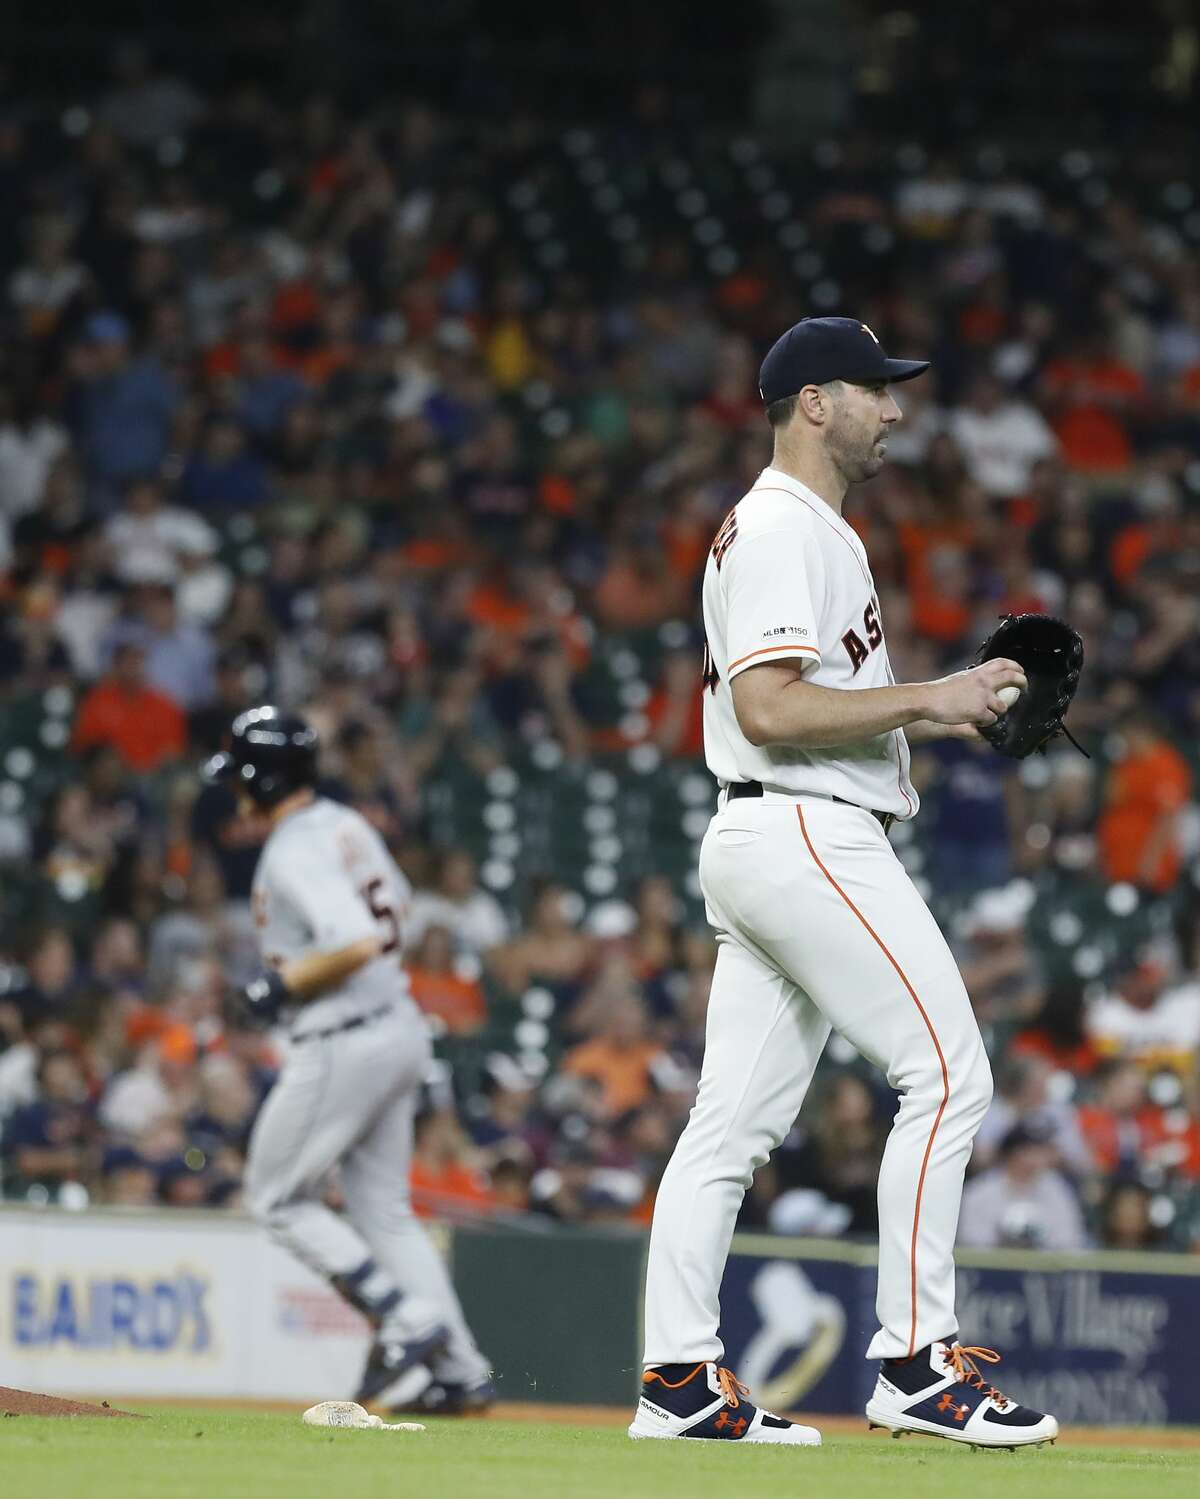 Houston Astros starting pitcher Justin Verlander (35) reacts as Detroit Tigers John Hicks runs the bases after his home run during the ninth inning of an MLB game at Minute Maid Park, Wednesday, August 21, 2019.